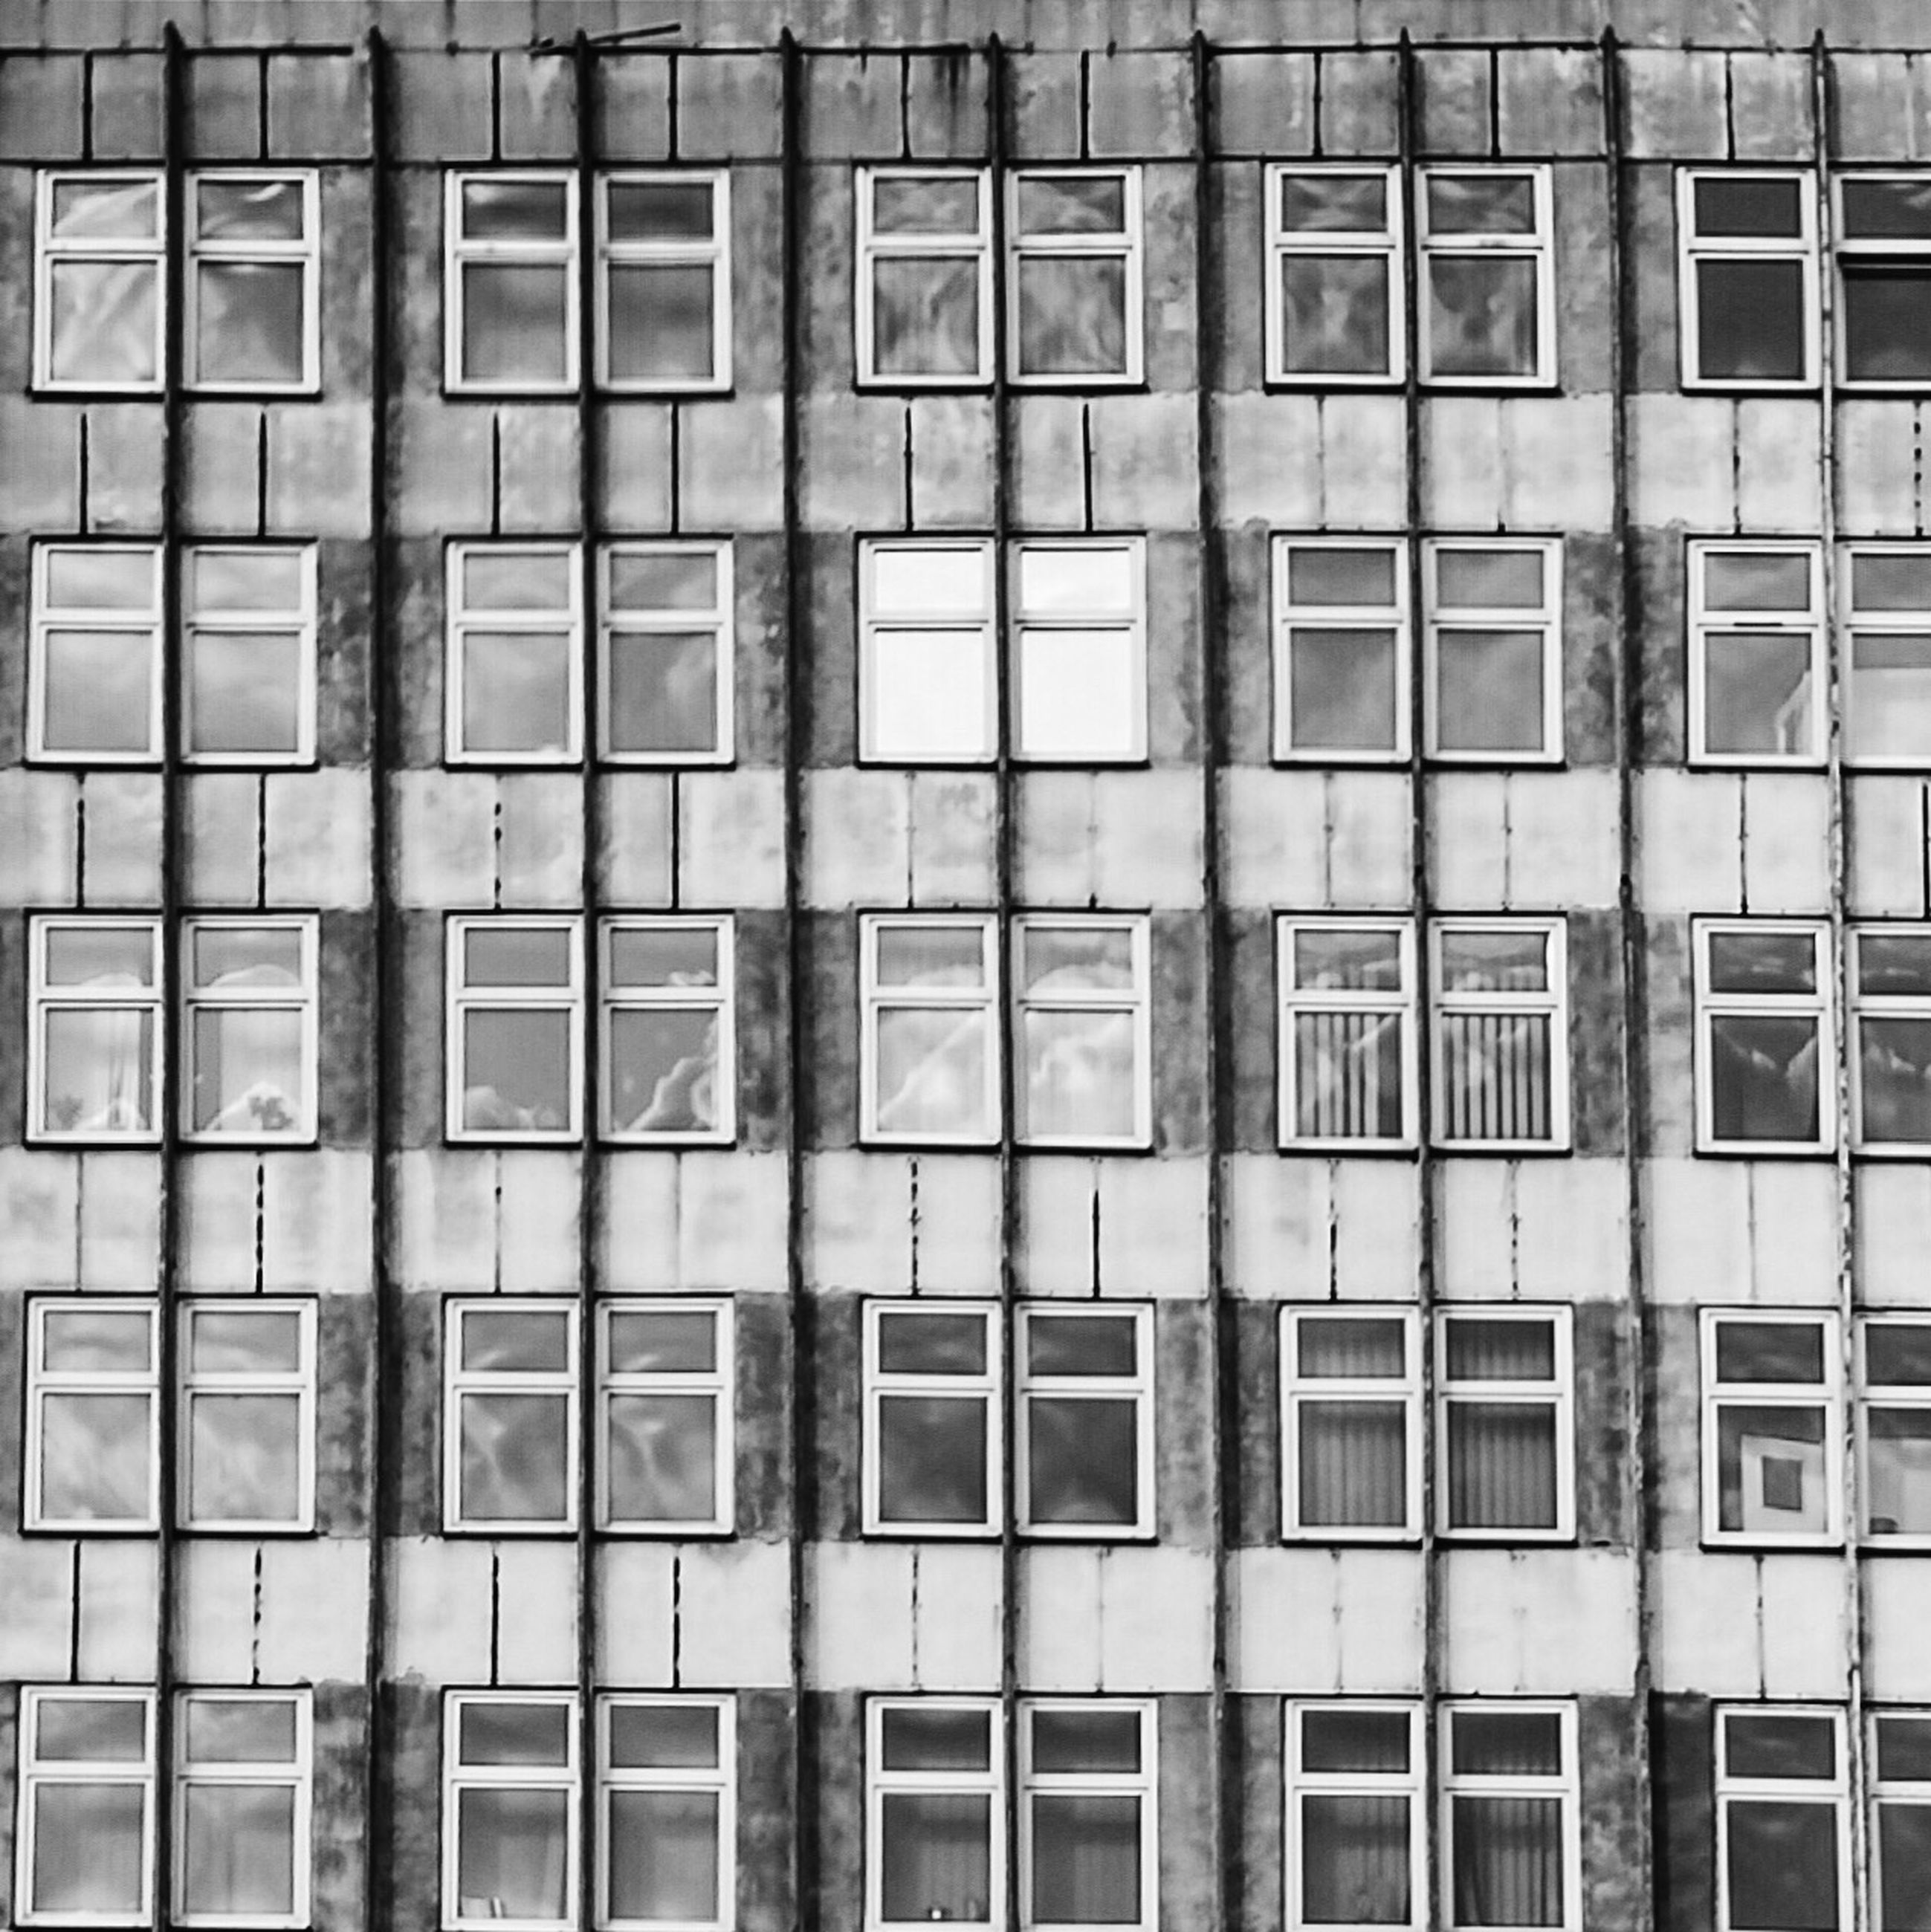 full frame, backgrounds, architecture, window, building exterior, built structure, repetition, in a row, building, pattern, side by side, glass - material, city, low angle view, apartment, residential building, no people, day, residential structure, outdoors